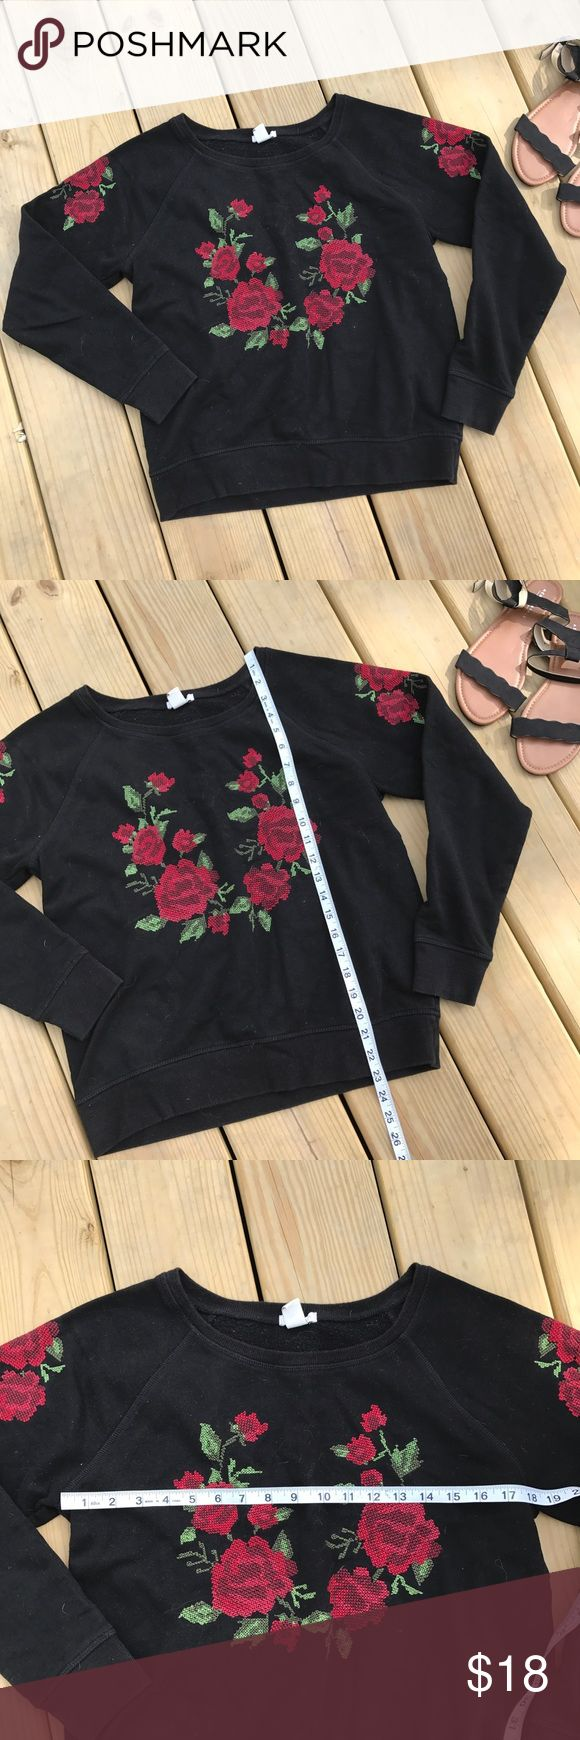 Forever 21 Rose Embroidered Sweatshirt Cute and comfy black Sweatshirt with rose print. This is similar to LF. 💠From a clean and smoke free home!💠 Add to a bundle to get a private discount 💠 Discount ALWAYS Available on 2+ items💠 No trades, holds, modeling or transactions off of Poshmark.💠 Forever 21 Tops